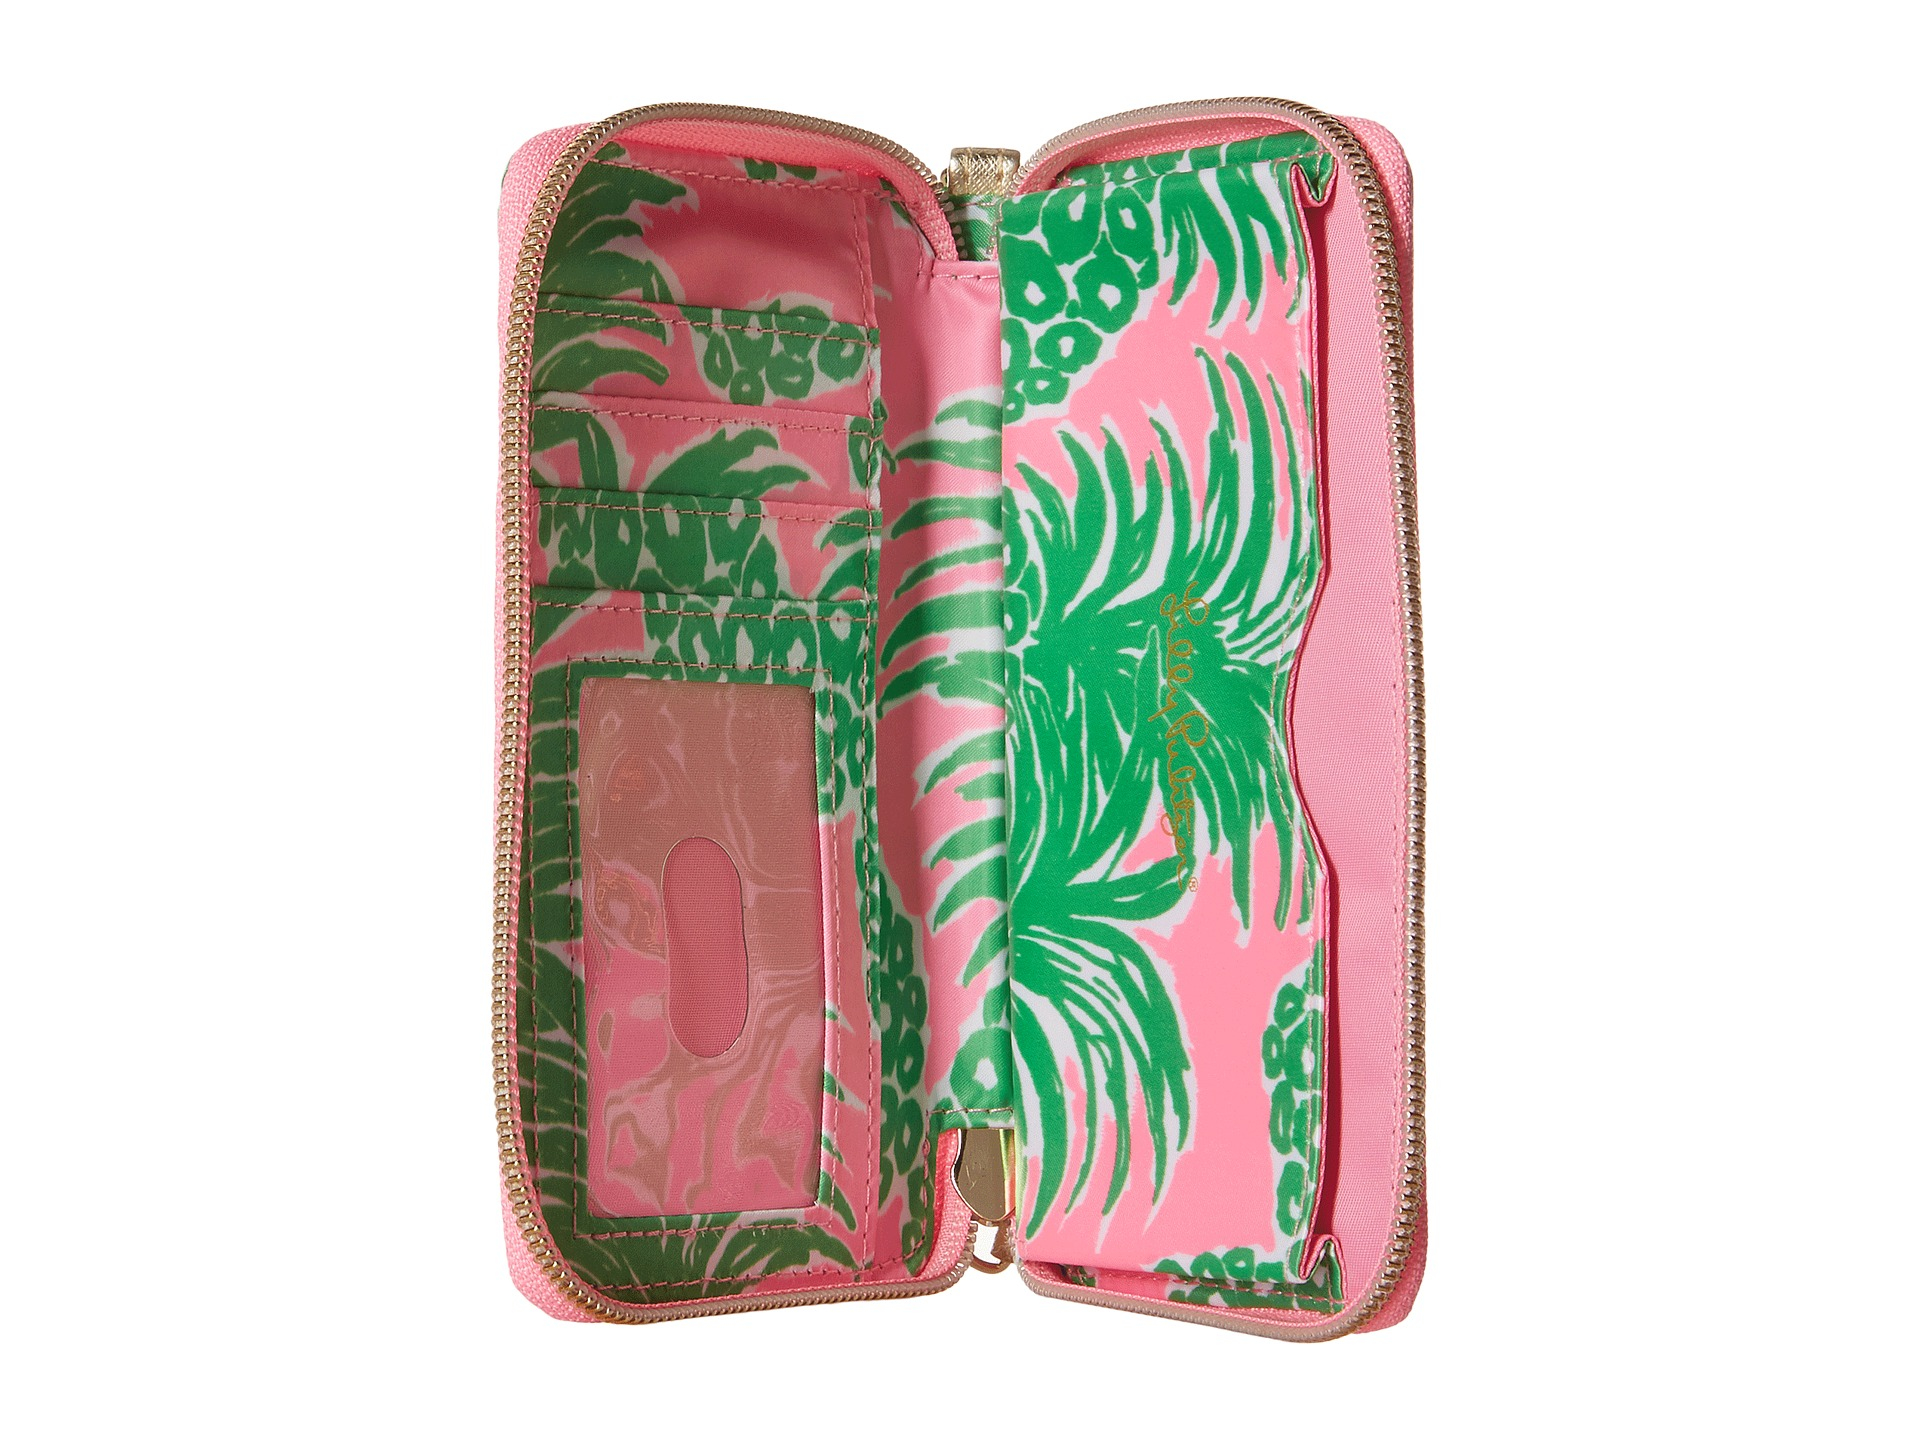 Enchanting Lilly Pulitzer Phone Case for Phone Accessories Ideas: Stylish Cell Phone Cases | Lilly Pulitzer Phone Case | Tech Case Vera Bradley